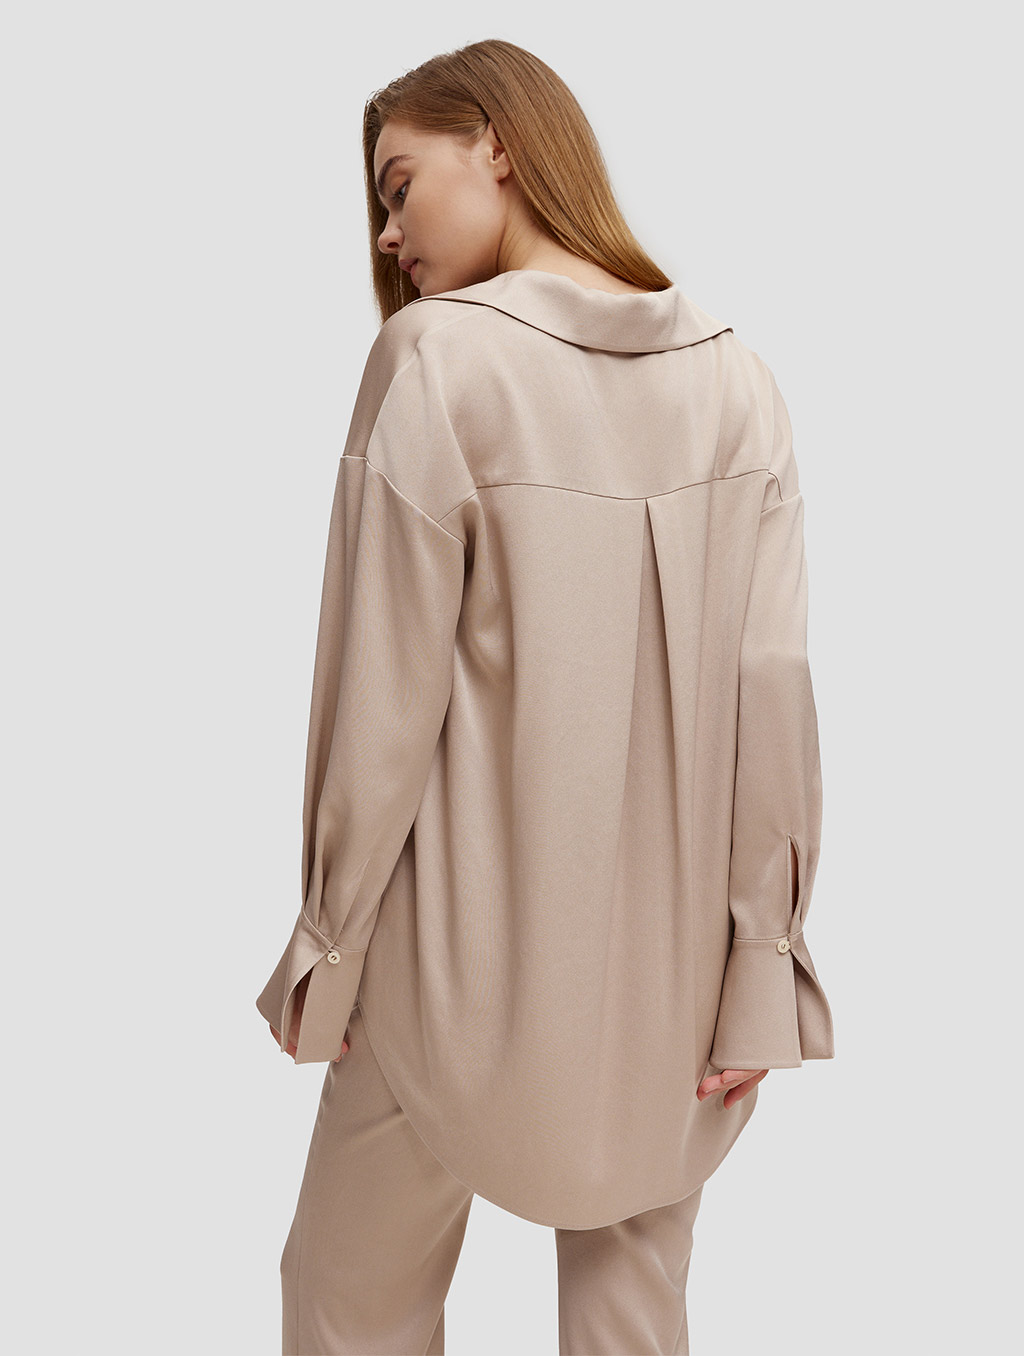 Buttoned Cuff Blouse - back- light camel